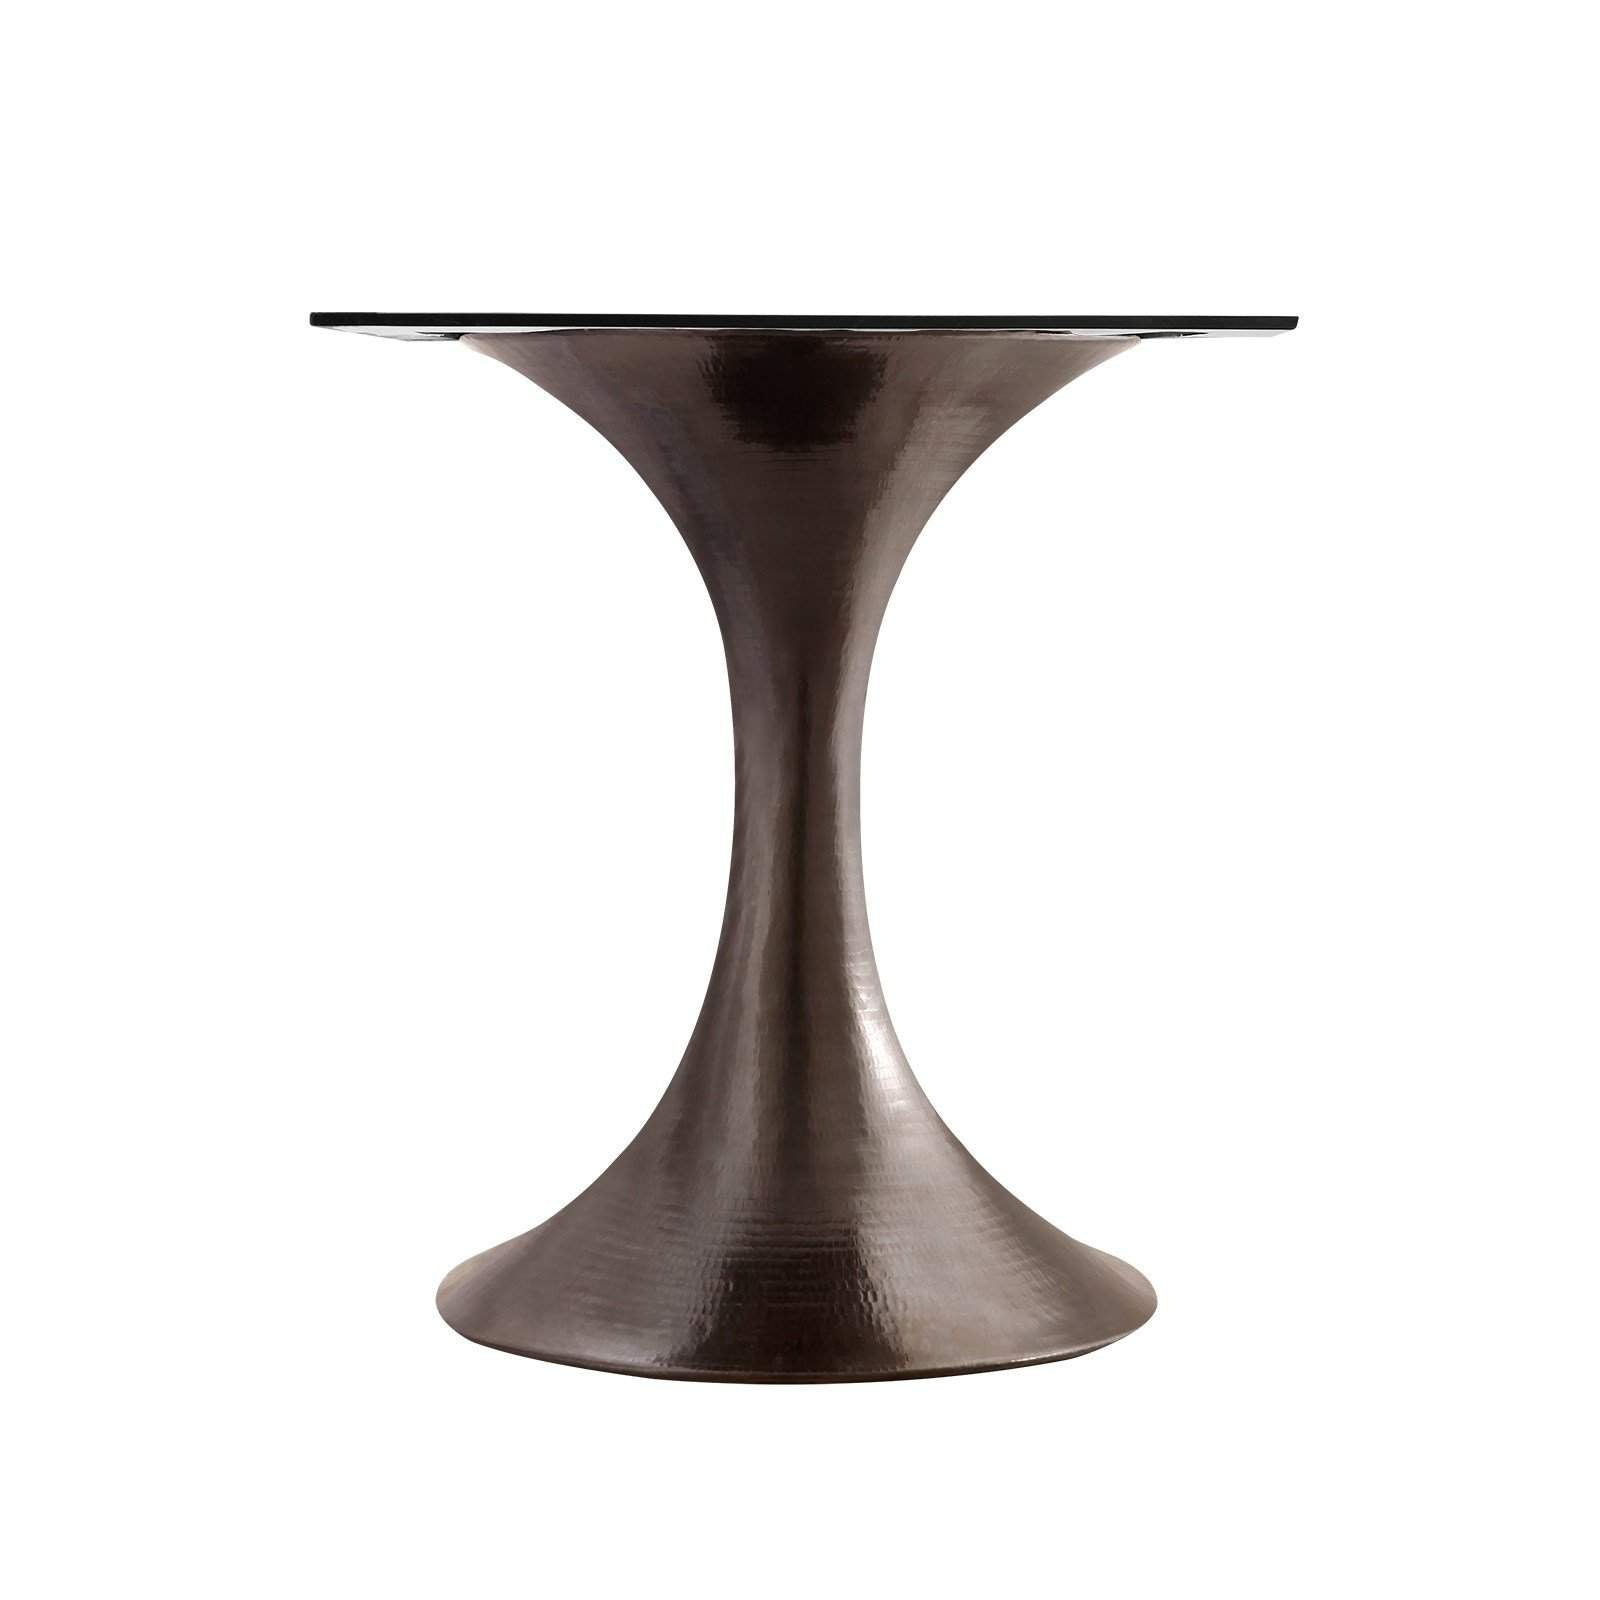 Bungalow 5 Stockholm Bronze Dining Table Base Pairs With 52 60 Top Sold Separately